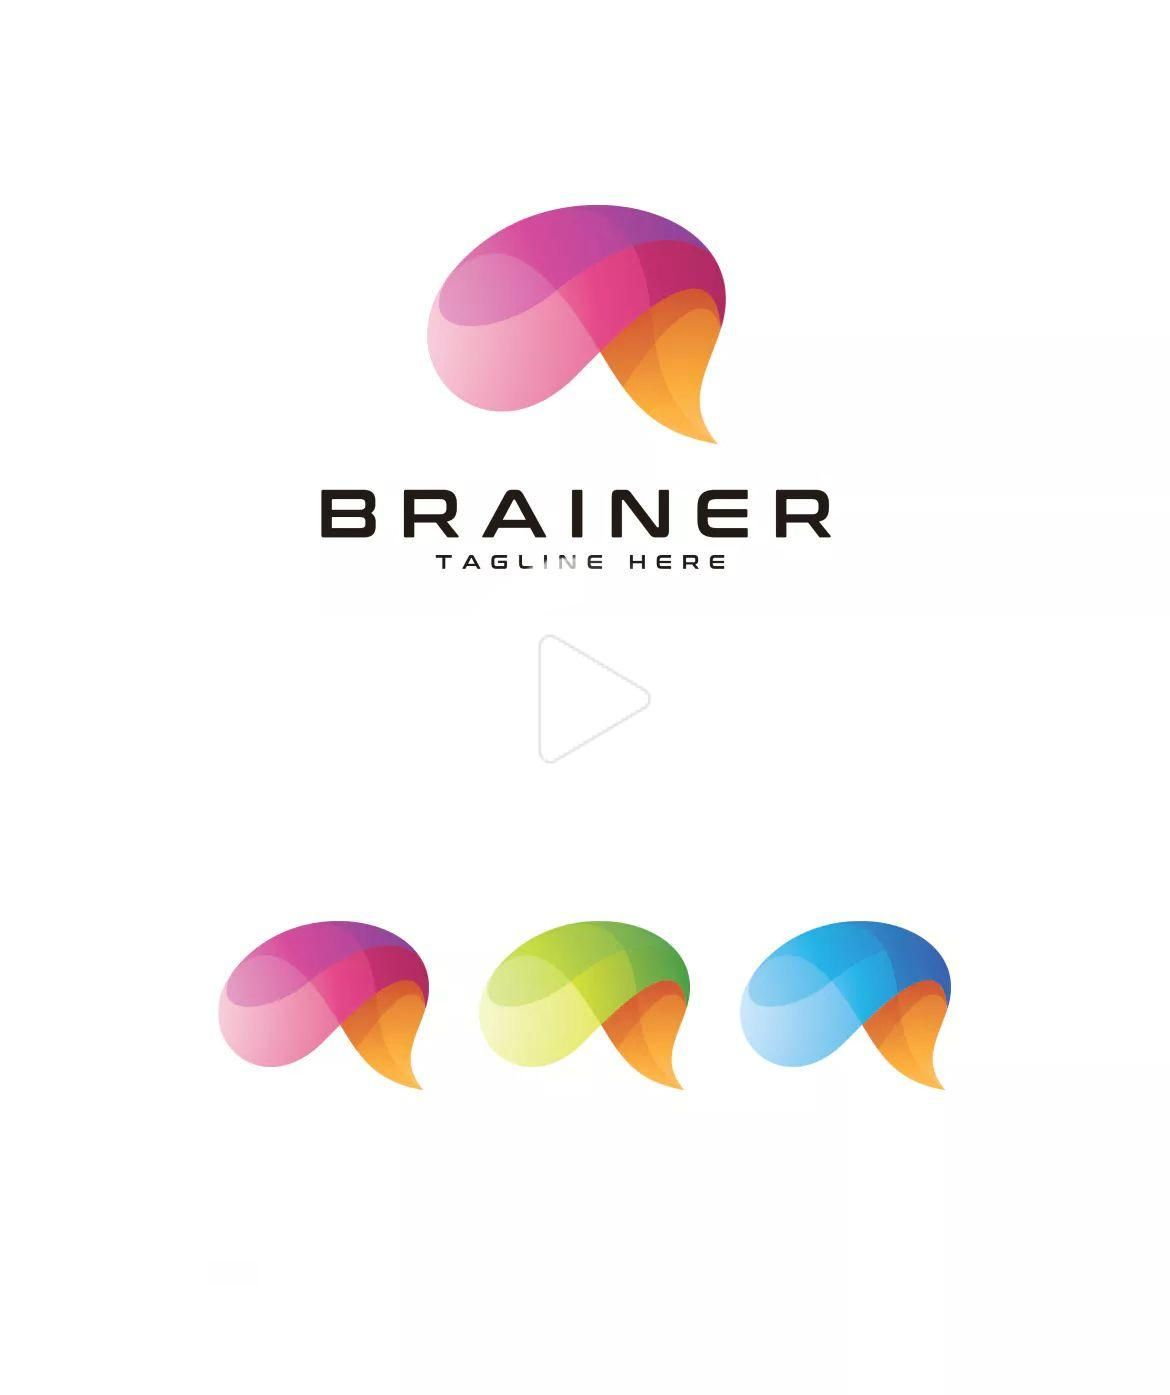 Brainer Brain Logo Template Ai Eps In 2020 Brain Logo Logo Templates Education Logo Design